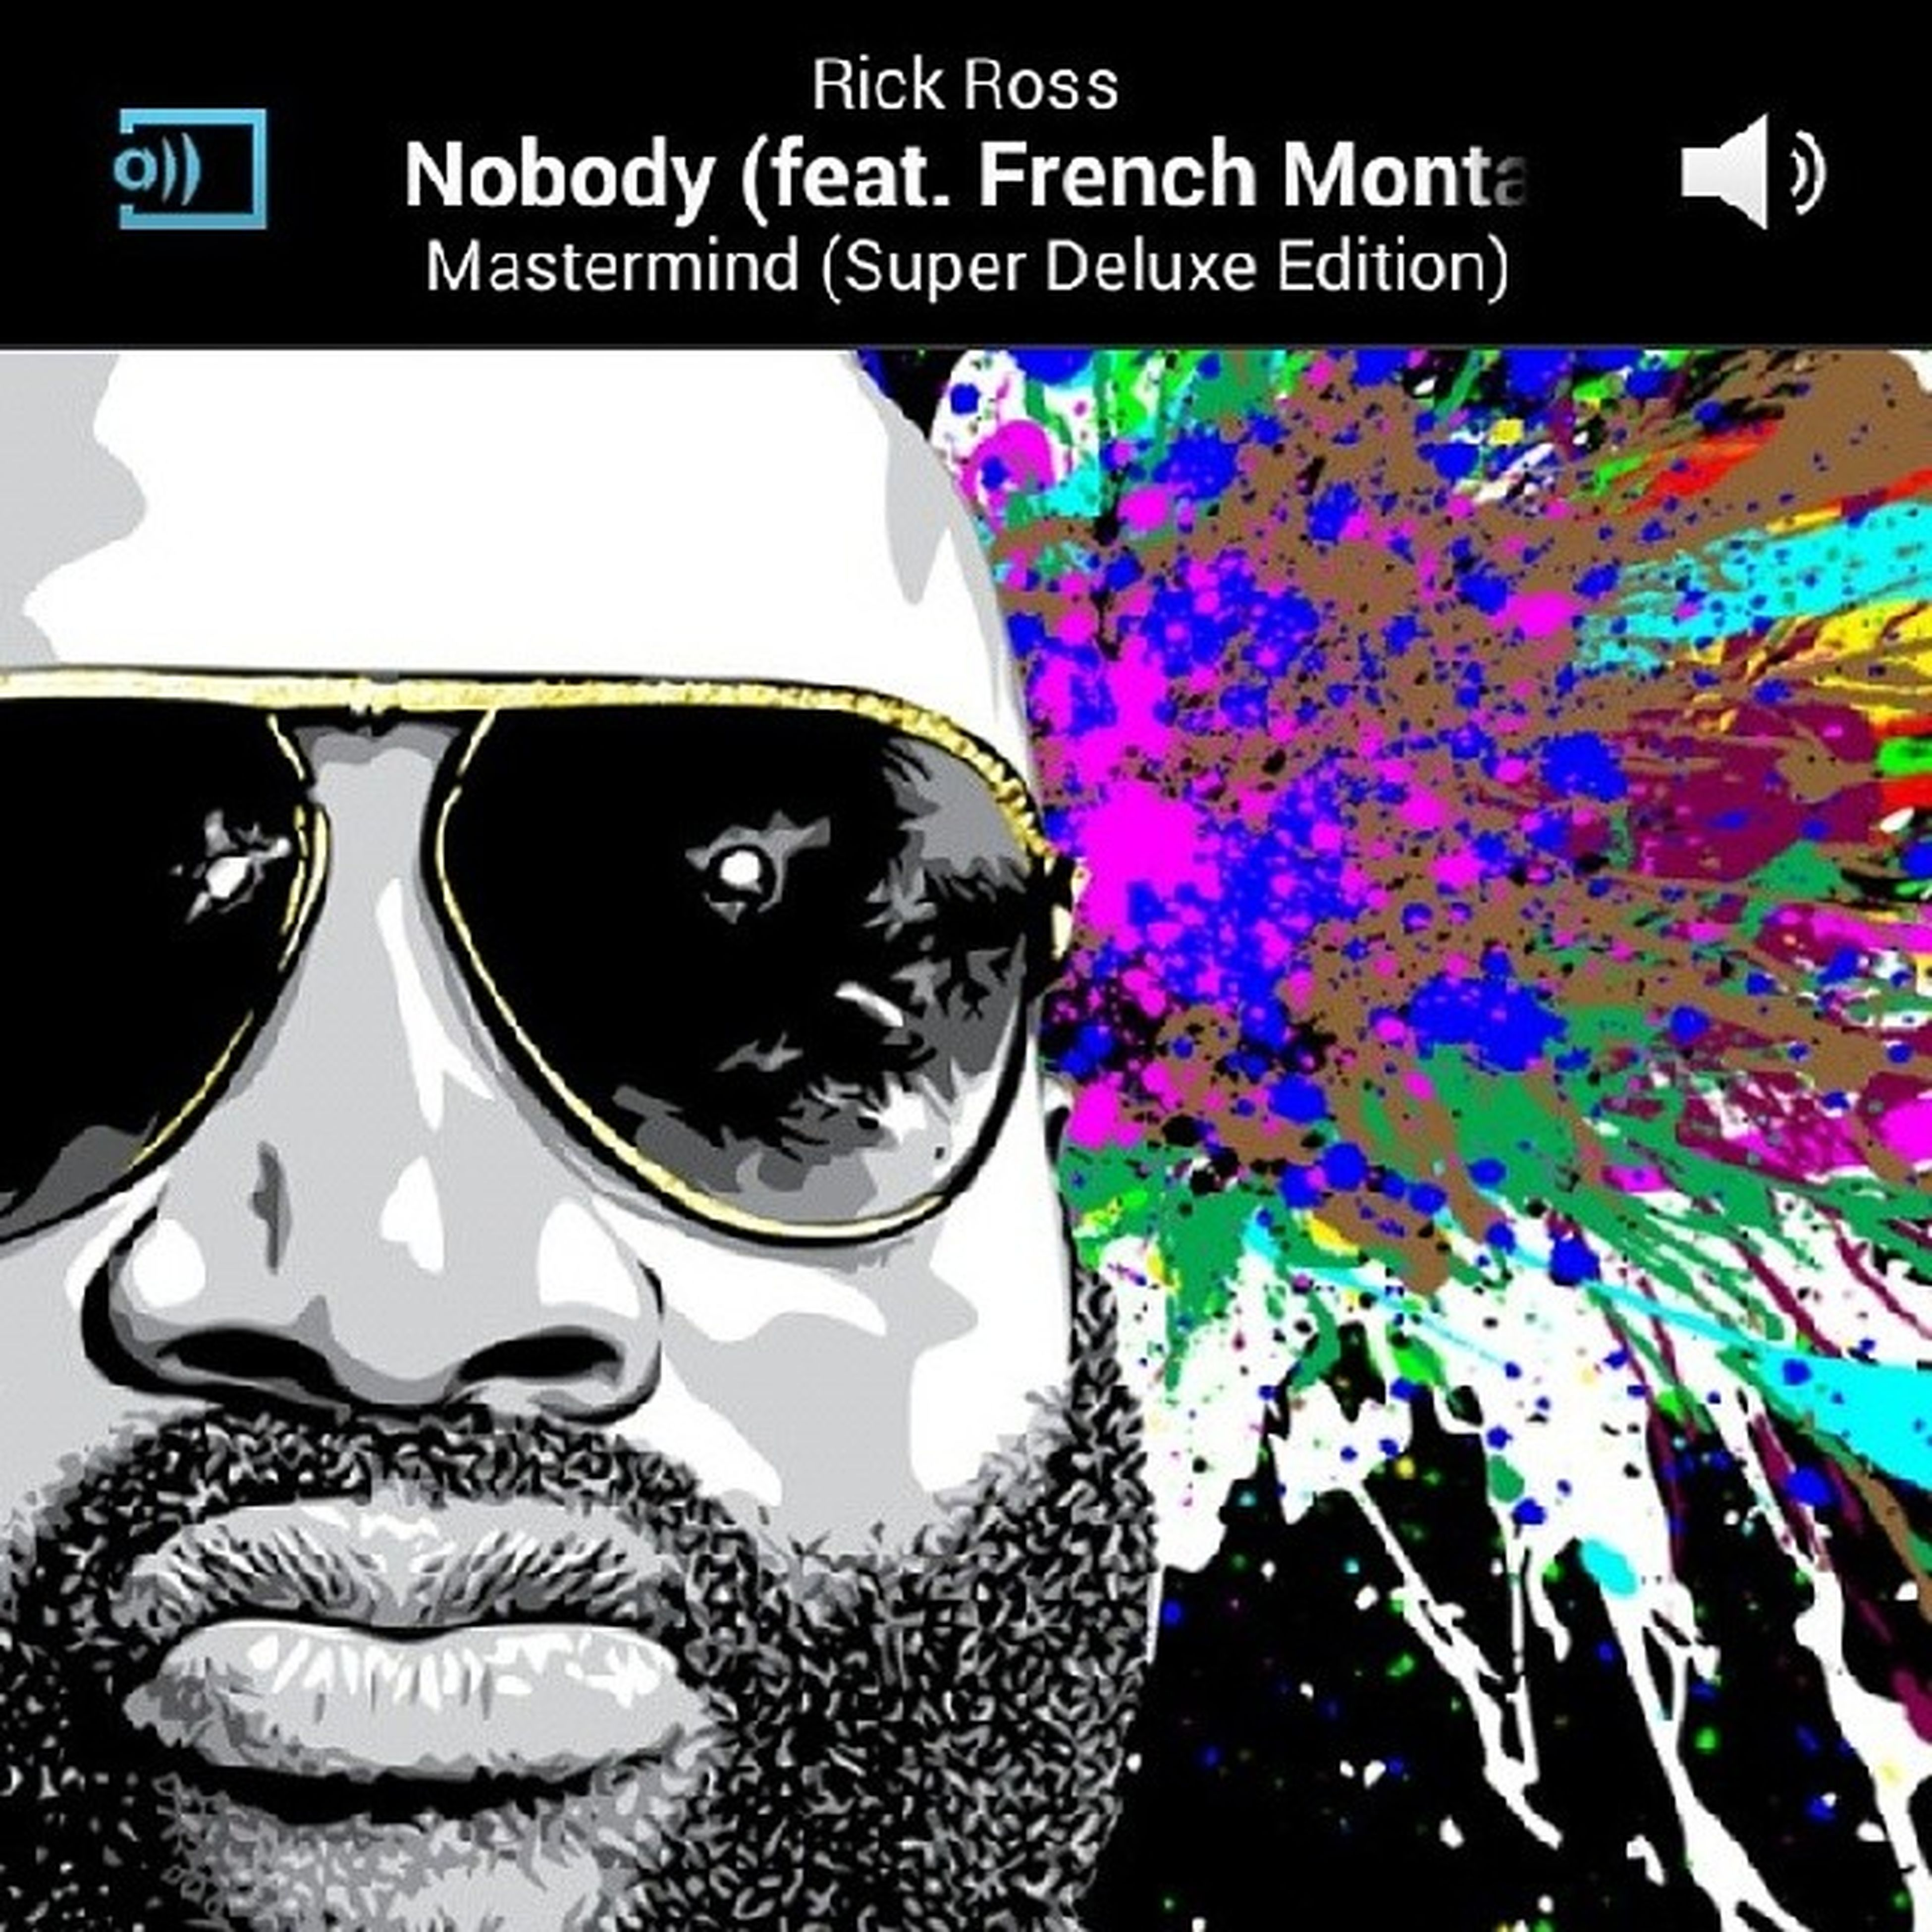 I think I found MyHit on this Rickross Mastermind well 1 of them